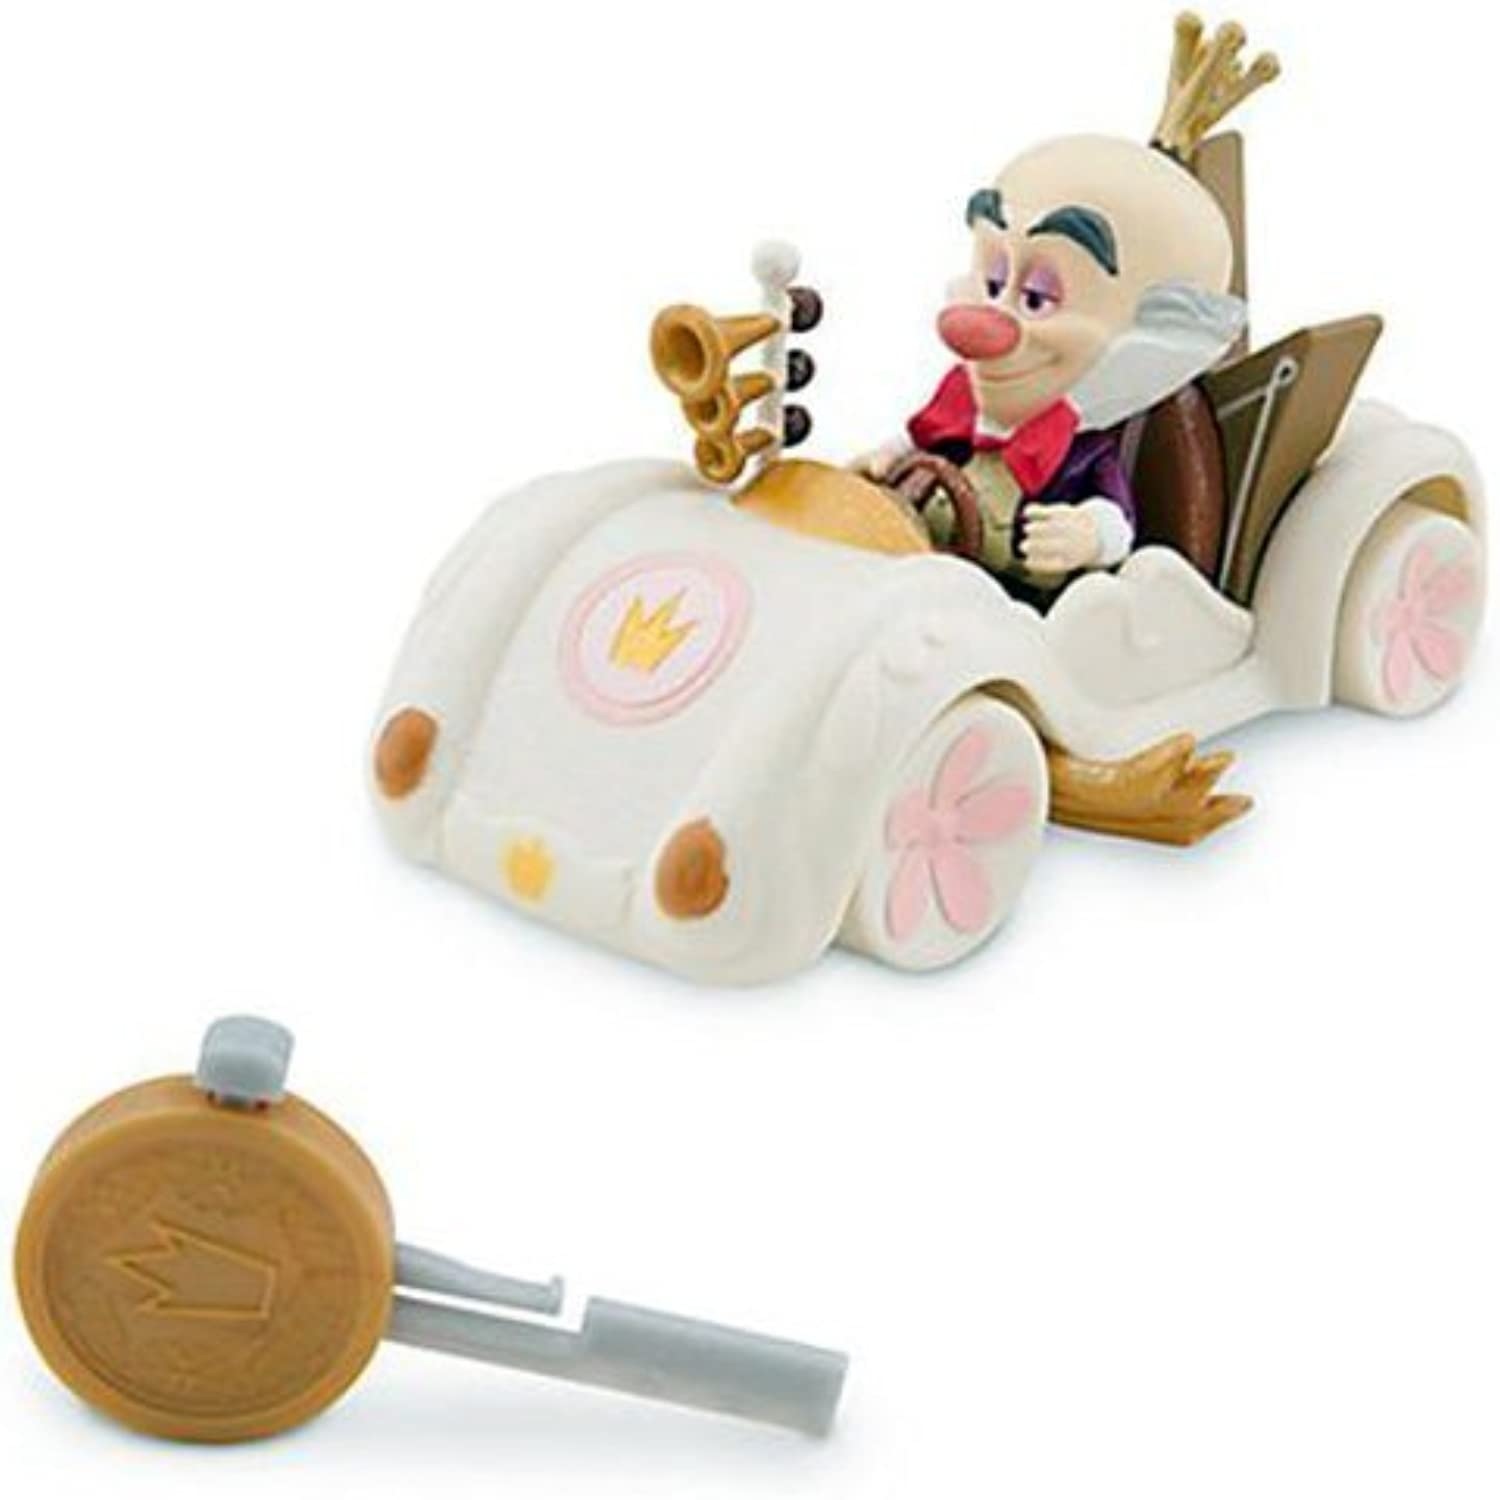 Disney Wreck-It Ralph Exclusive King Candy Racer by Wreck-It Ralph